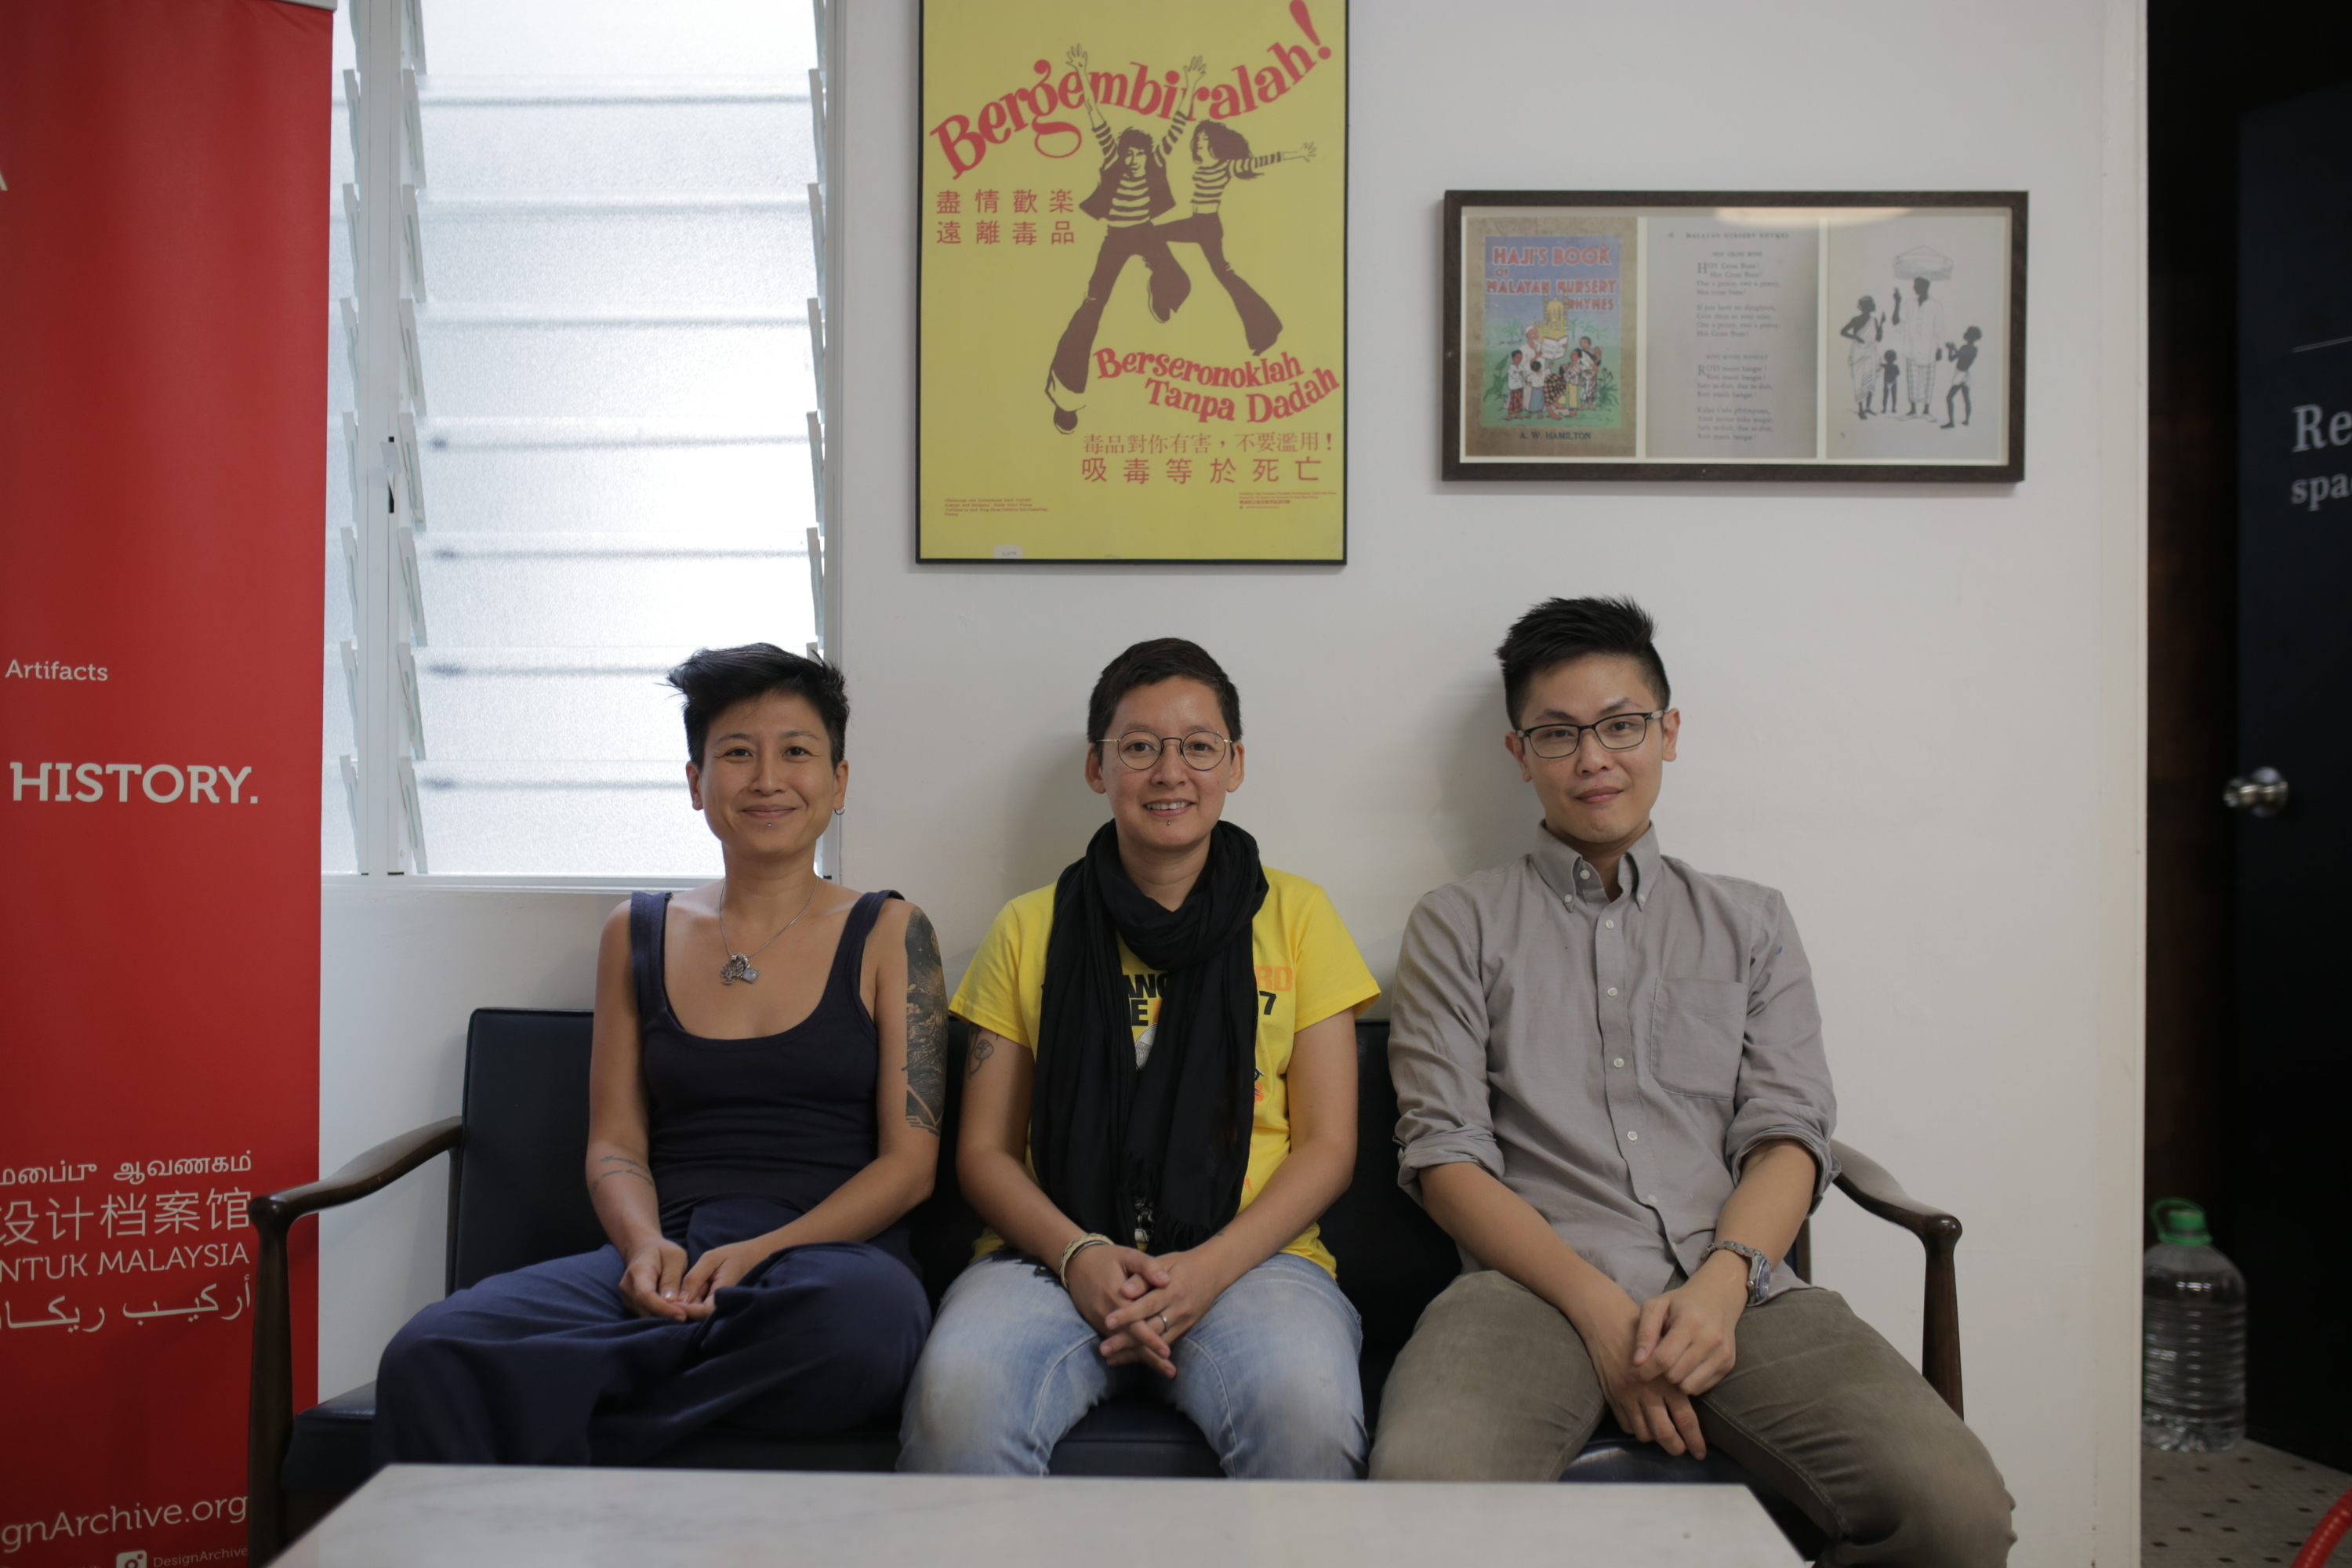 What's the deal with: Malaysia Design Archive